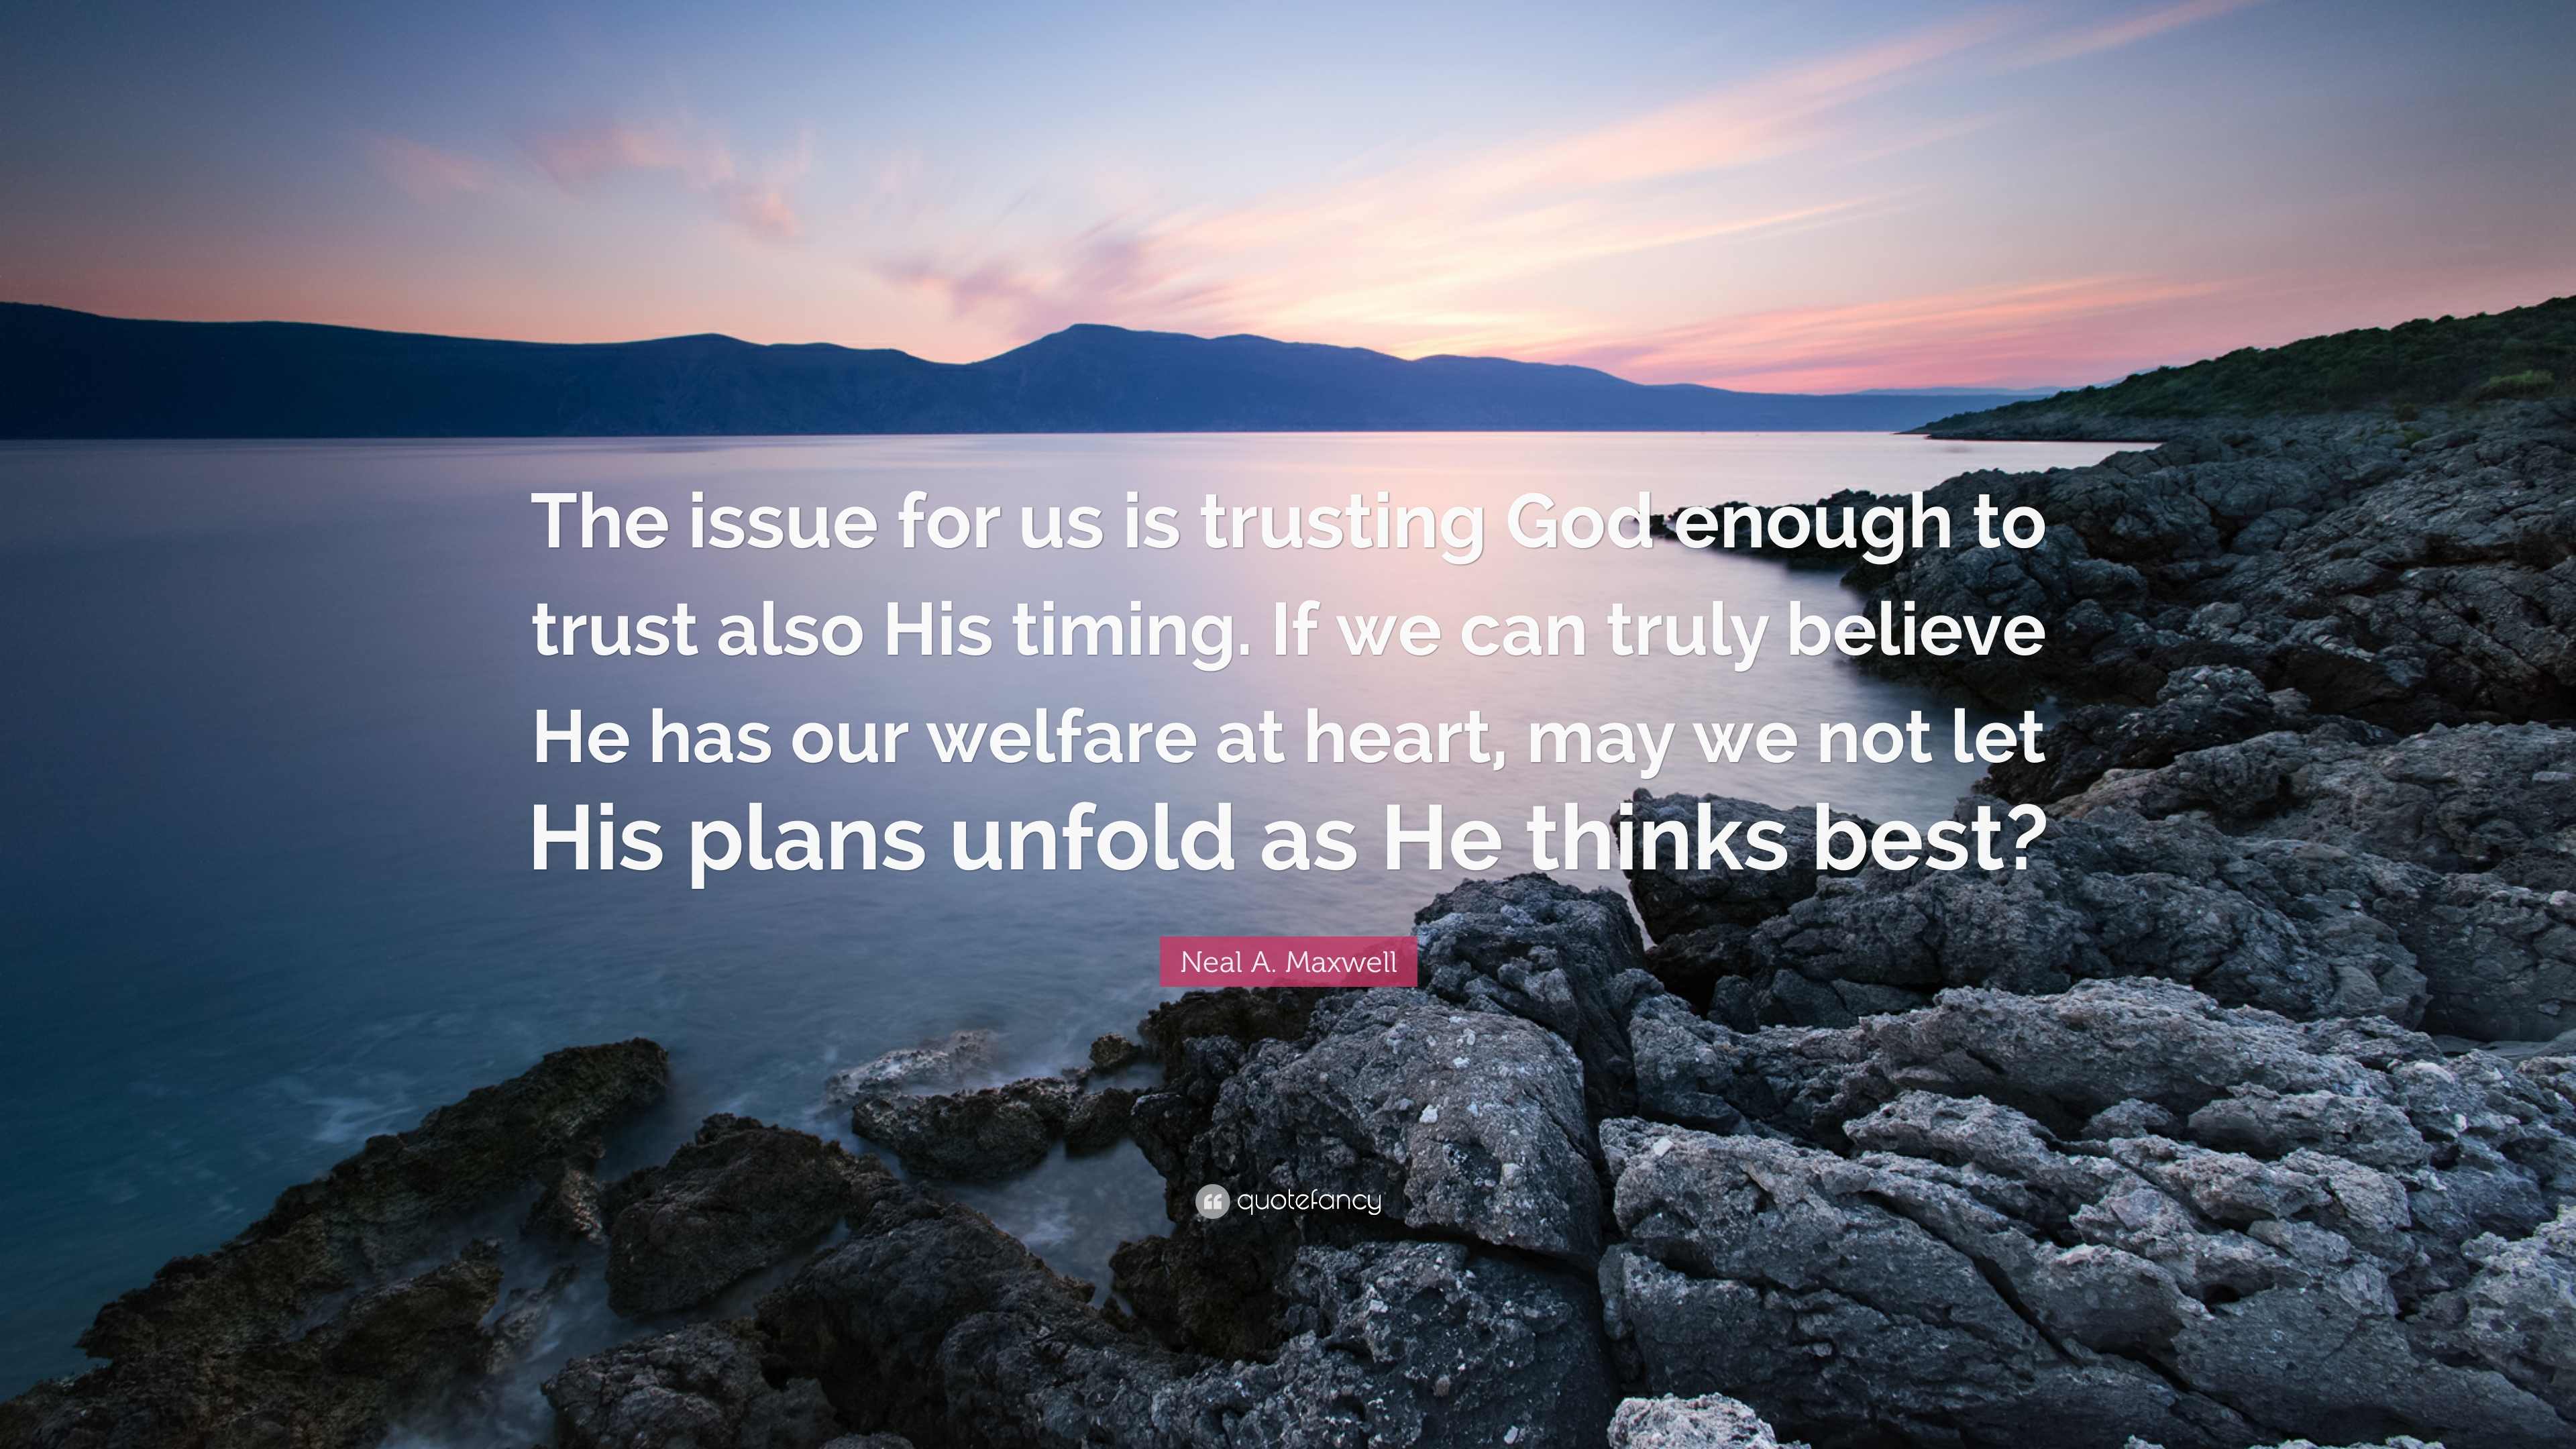 Neal A Maxwell Quote The Issue For Us Is Trusting God Enough To